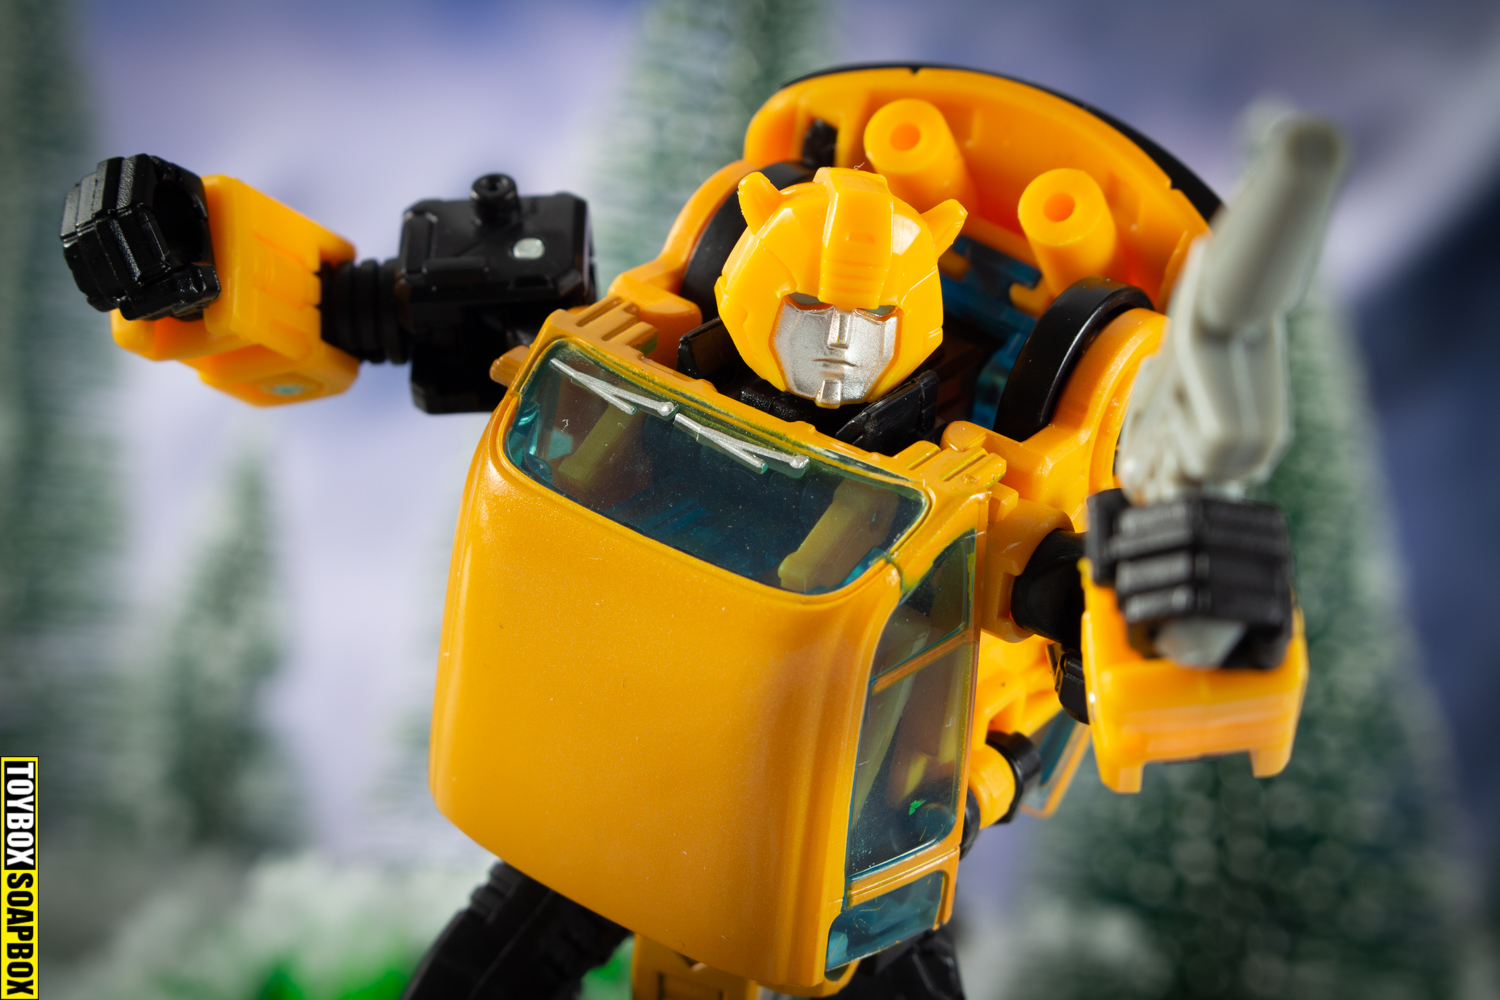 Transformers earthrise netflix bumblebee review